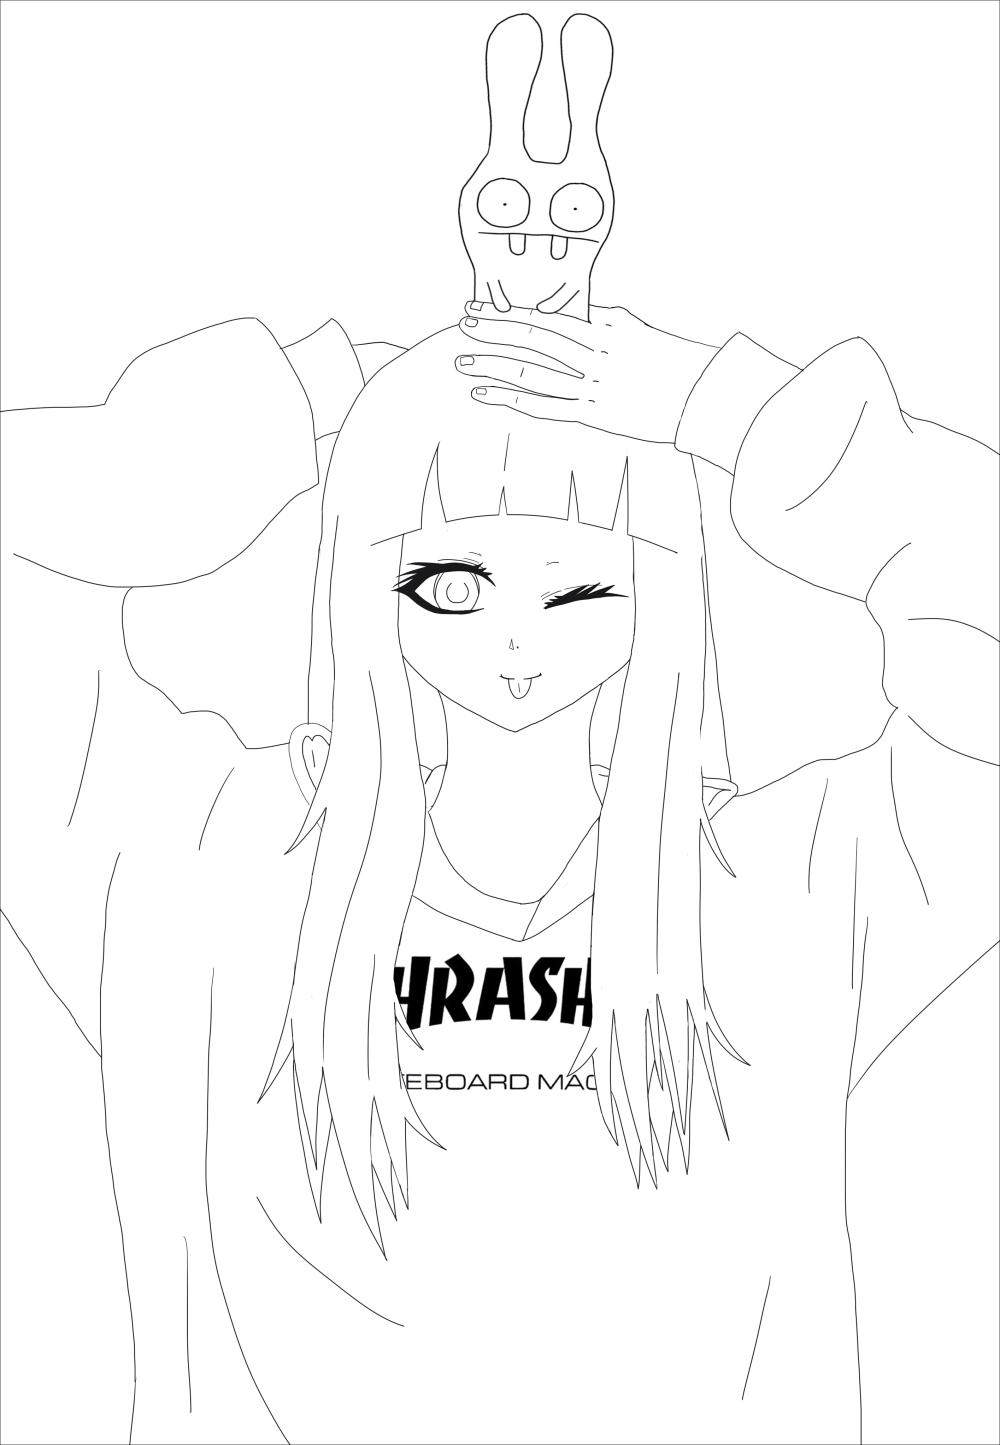 coloring-page-adult-thrasher-girl